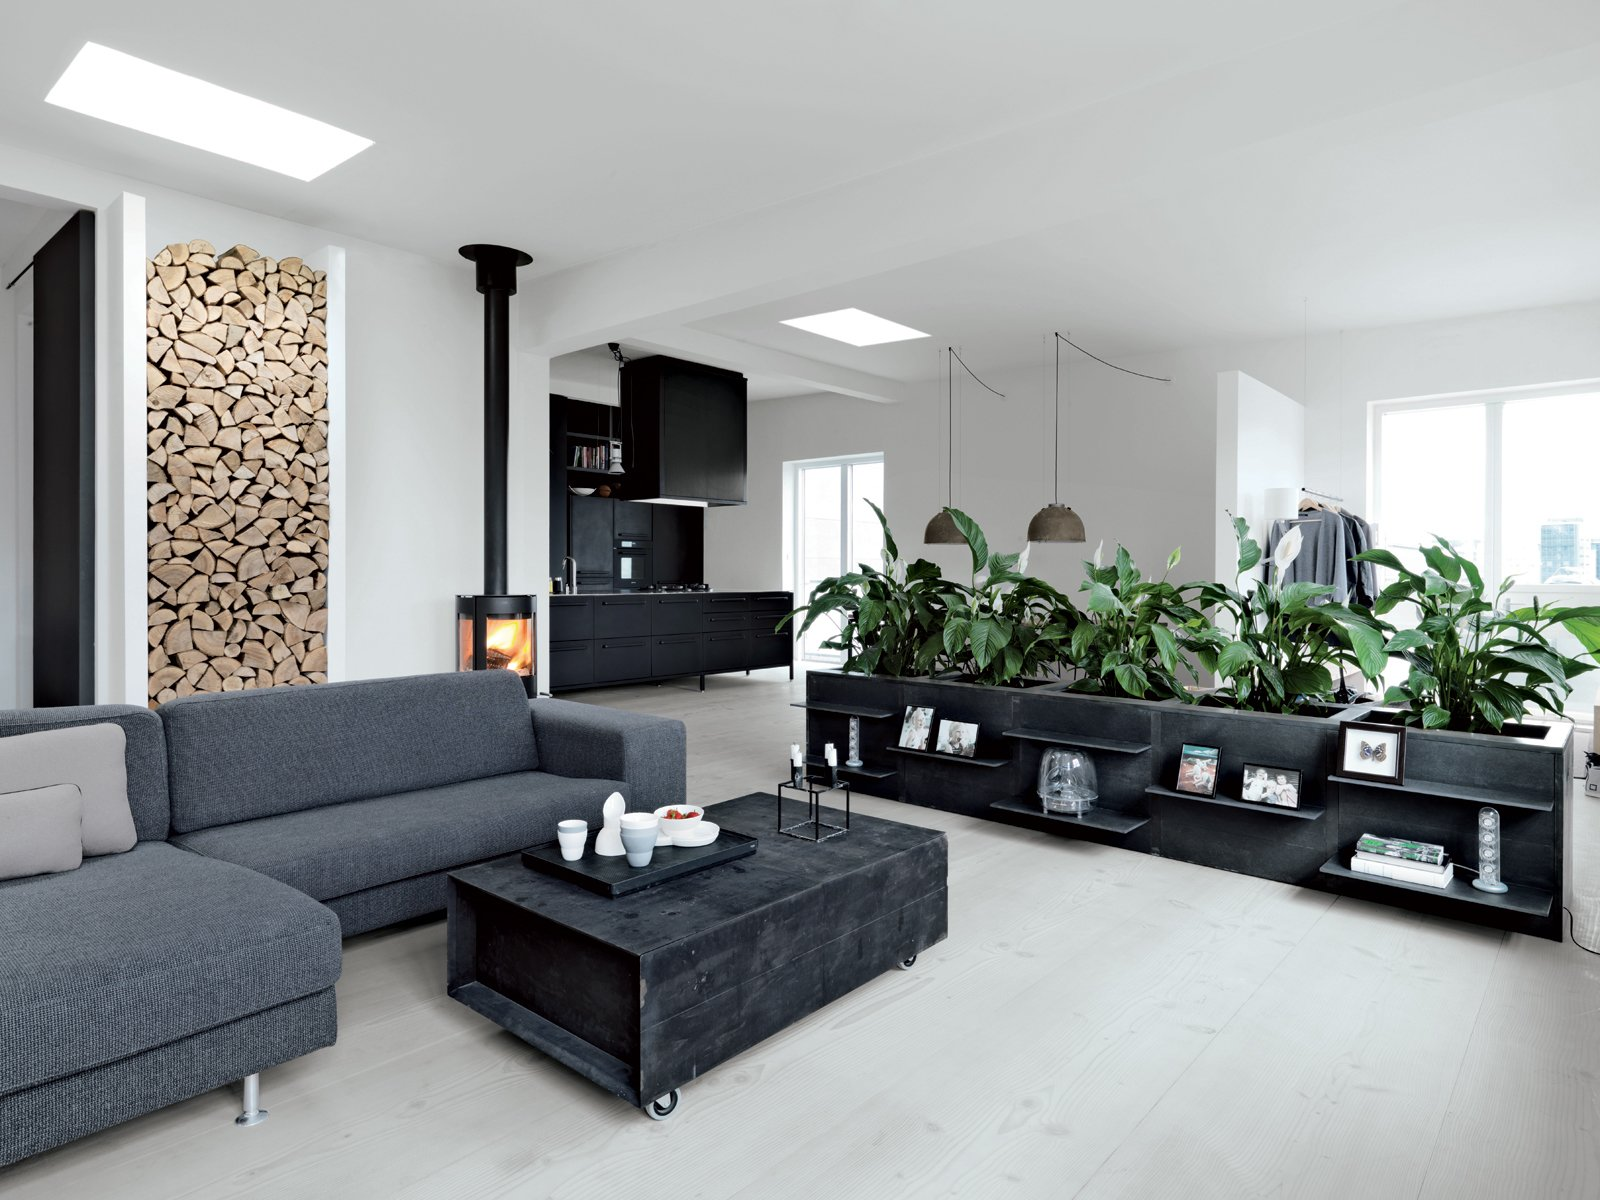 """The living room features a sofa from Engell; a suspended Parentesi lamp by Achille Castiglioni and Pio Manzù for Flos (Olsen's """"all-time favorite""""); and a wood-burning stove made by Aduro. The firewood nook set in the left wall is Jensen's own design. Olsen is responsible for the low planters around the perimeter, which she had fabricated from poured concrete framed in welded iron, with lacquered MDF panels for doors. """"Some people laughed because we'd never had plants in our apartment,"""" she says. """"So when we wanted a hedge, our friends were, like, Ok. Really? Good luck with that.""""  Modern Wood-Burning Stoves by Megan Hamaker from Converted Loft Fit for a Modern Family in Copenhagen"""